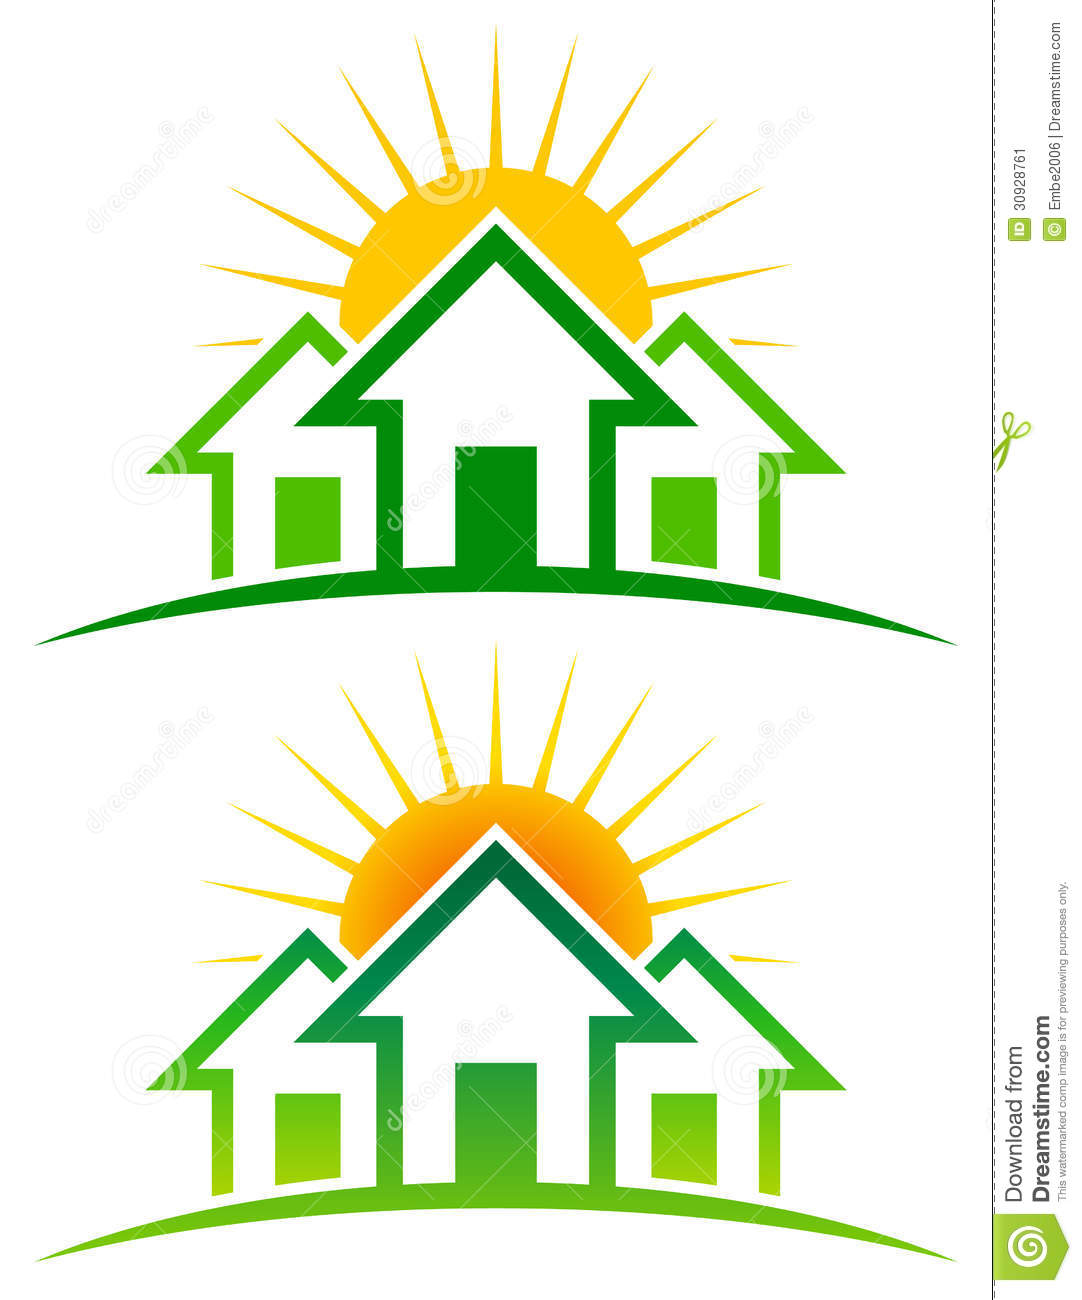 Sunny home logo stock image image 30928761 for The sunhouse